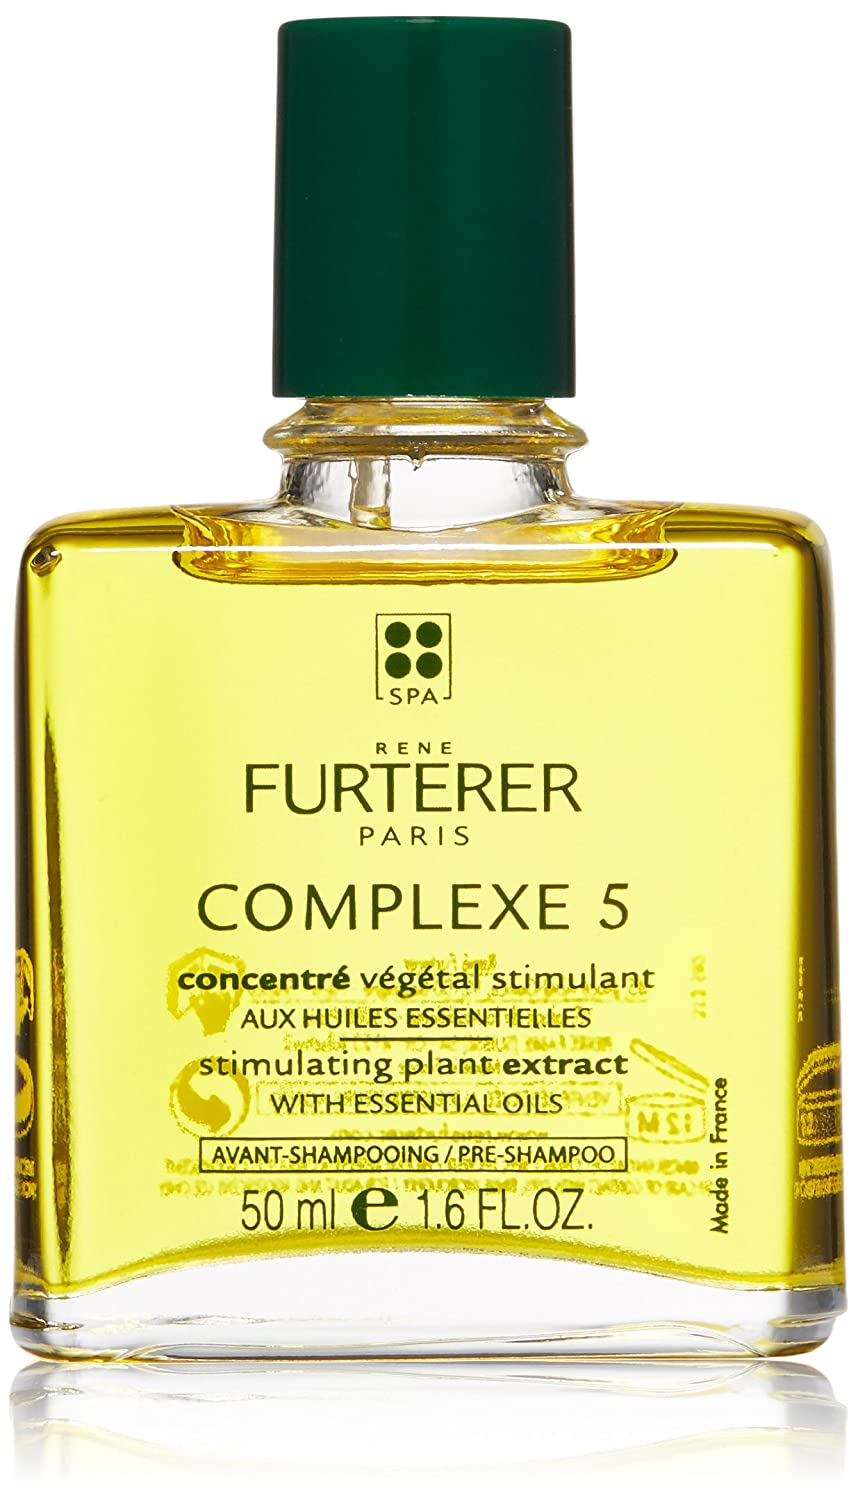 RENE FURTERER COMPLEXE 5-50ml Botella